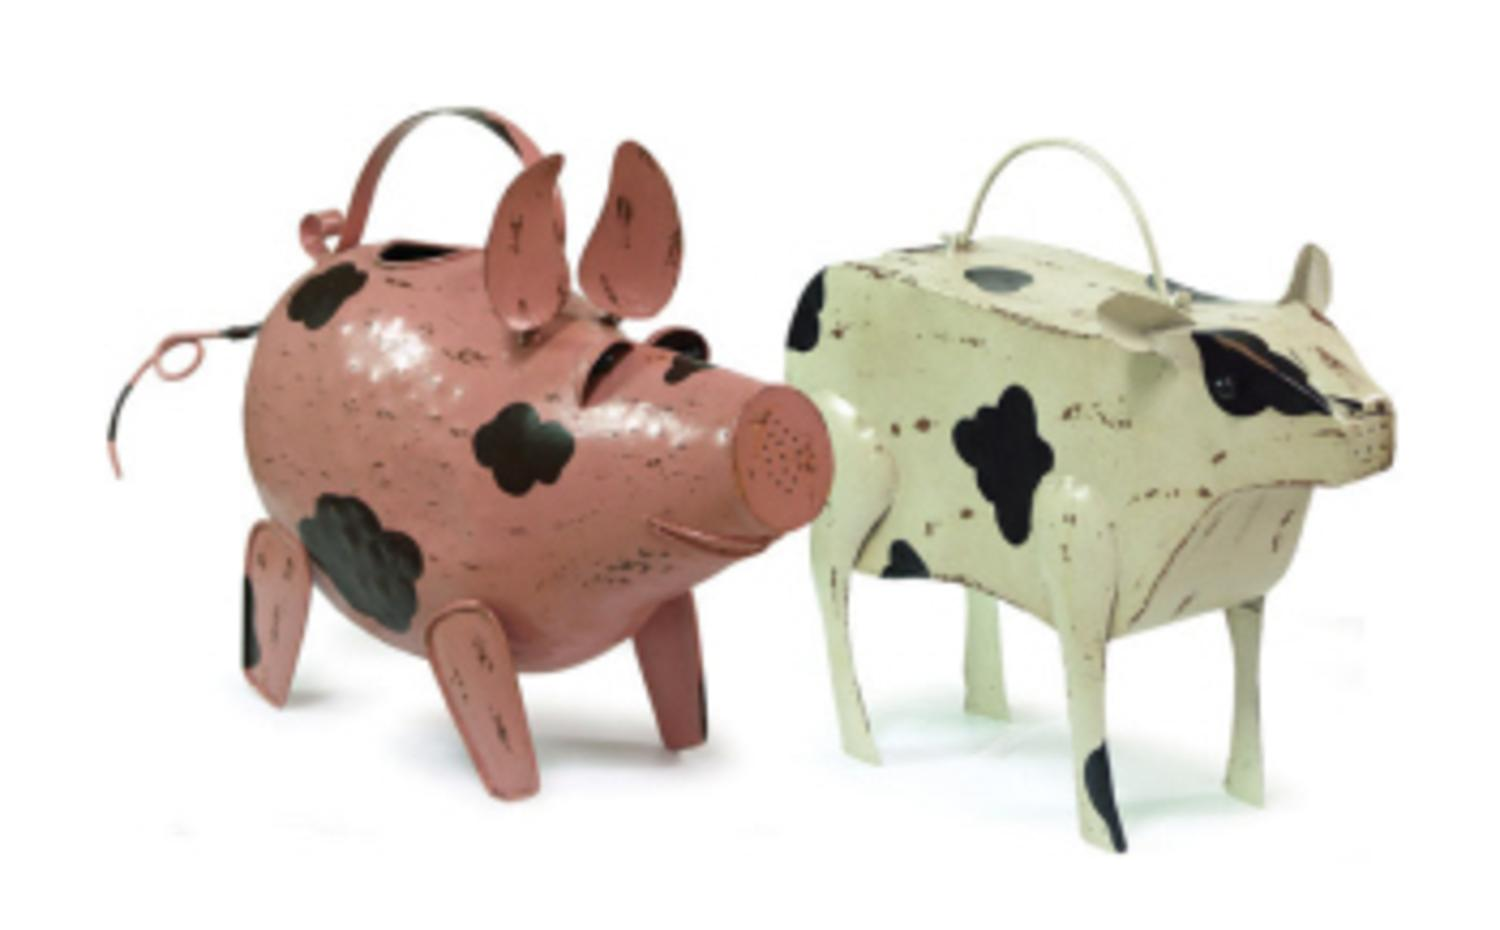 "Set of 2 Pig and Cow Decorative Metal Gardening Outdoor Watering Cans 14.5"" by CC Home Furnishings"